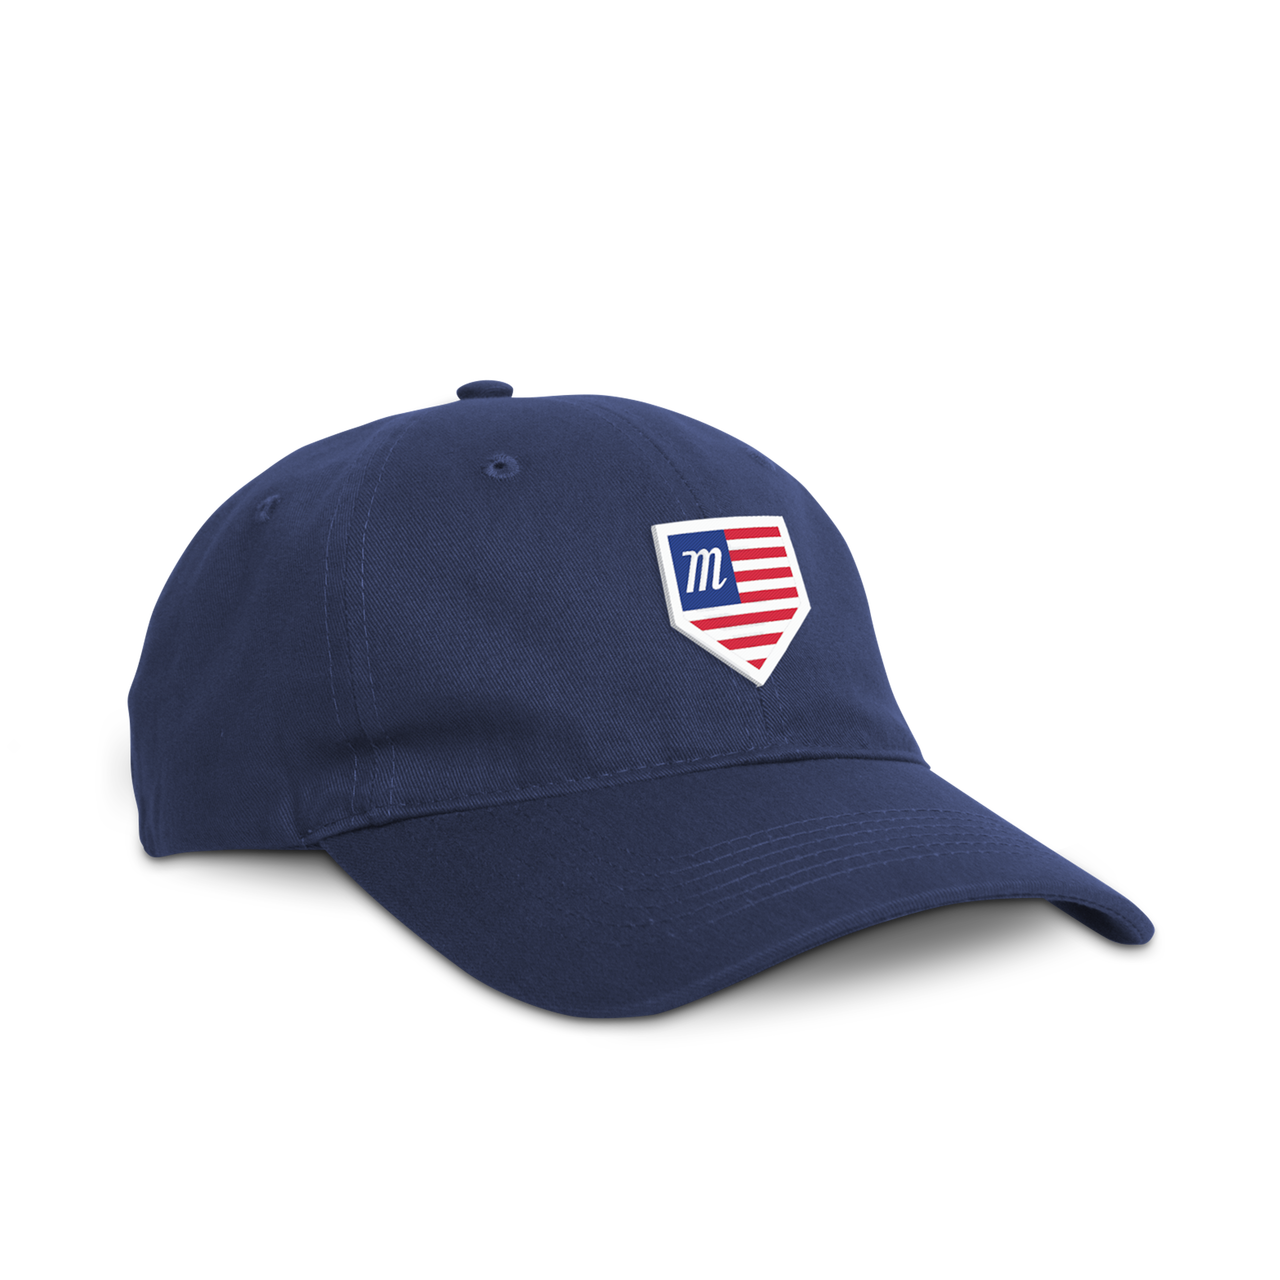 97ae3911b72 Marucci USA Home Plate Relaxed Fit Adjustable Hat